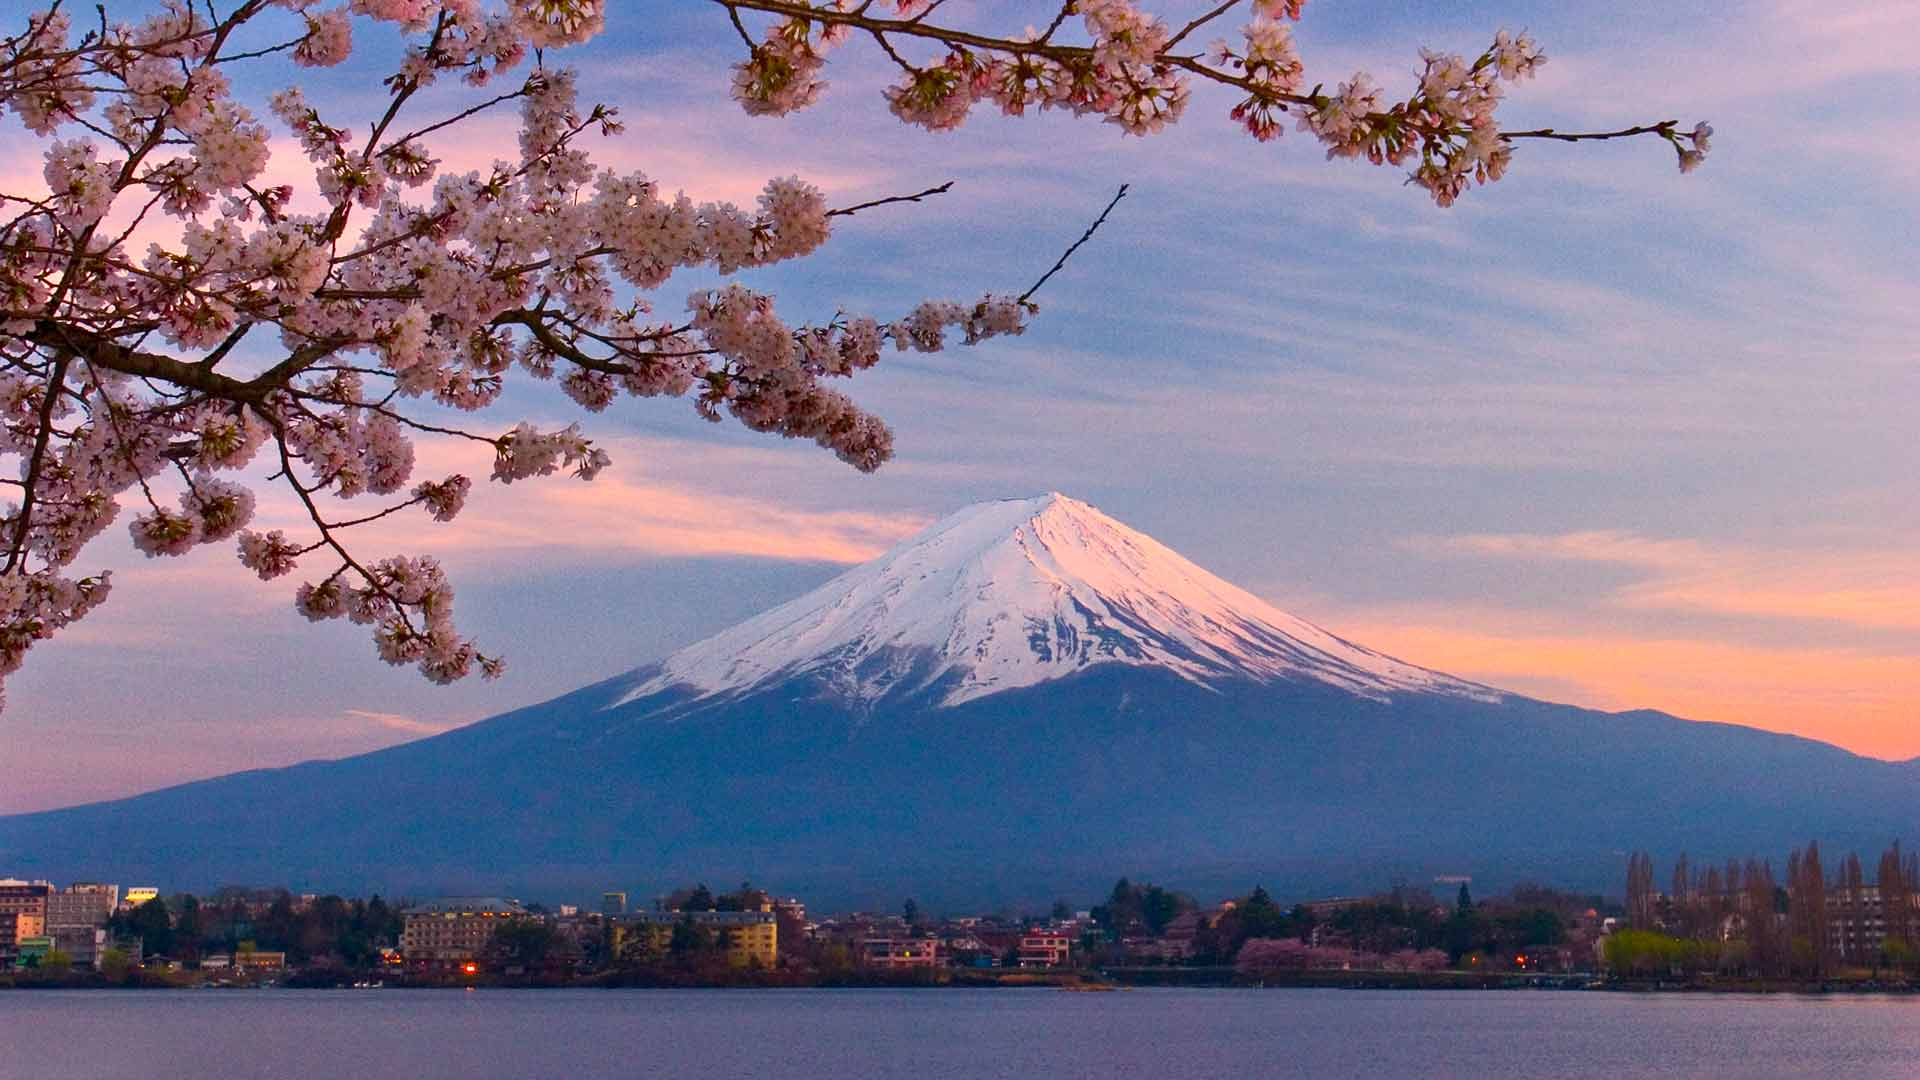 Japan Scenery Wallpapers Top Free Japan Scenery Backgrounds Wallpaperaccess